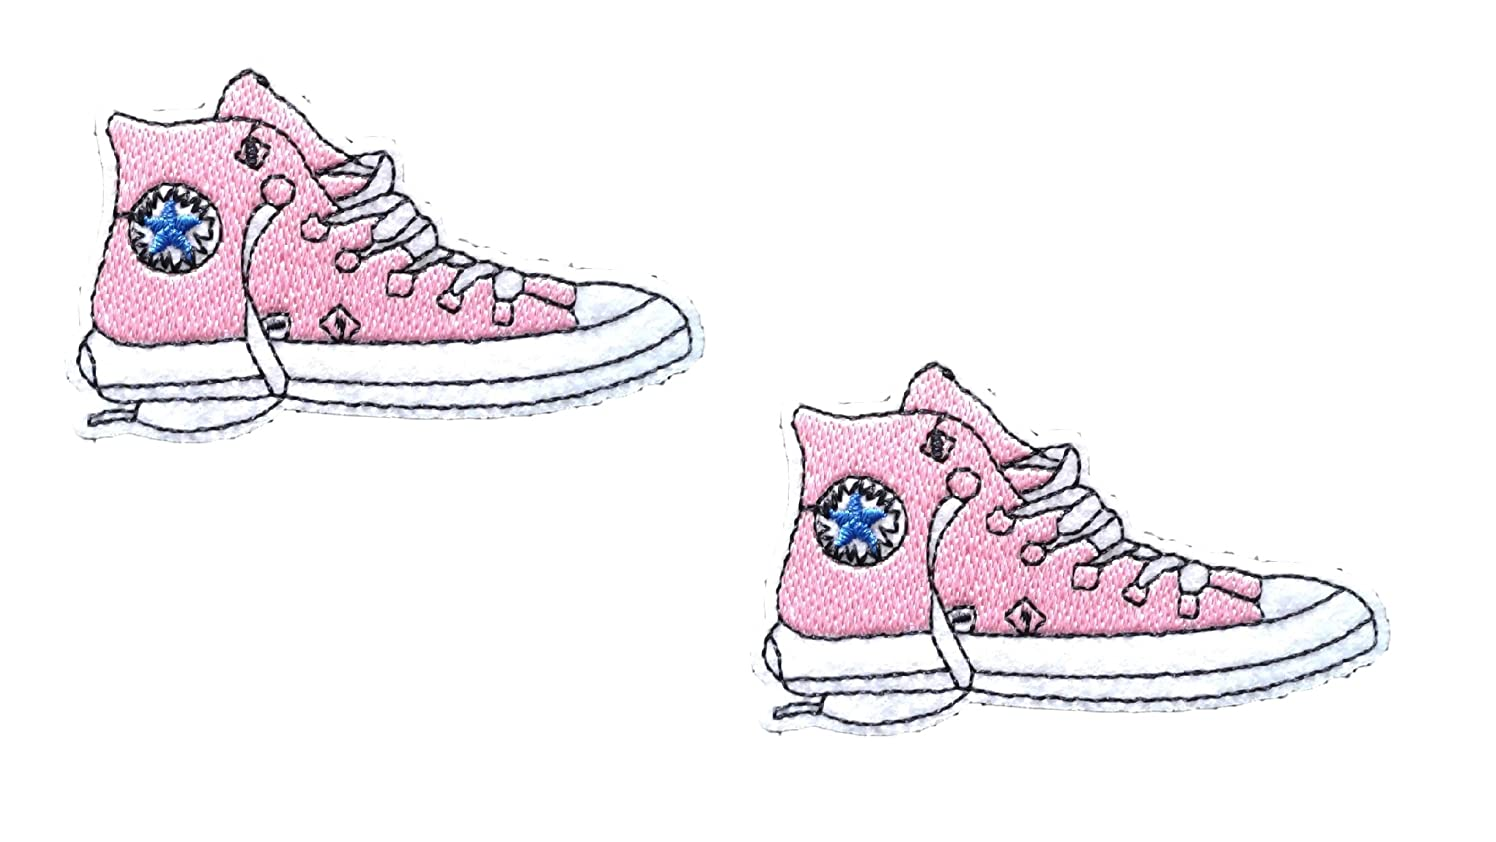 2 pieces LIGHT PINK SNEAKER SHOES Iron On Patch Applique High Top Footwear Motif Children Decal 2.9 x 1.9 inches (7.5 x 5 cm)